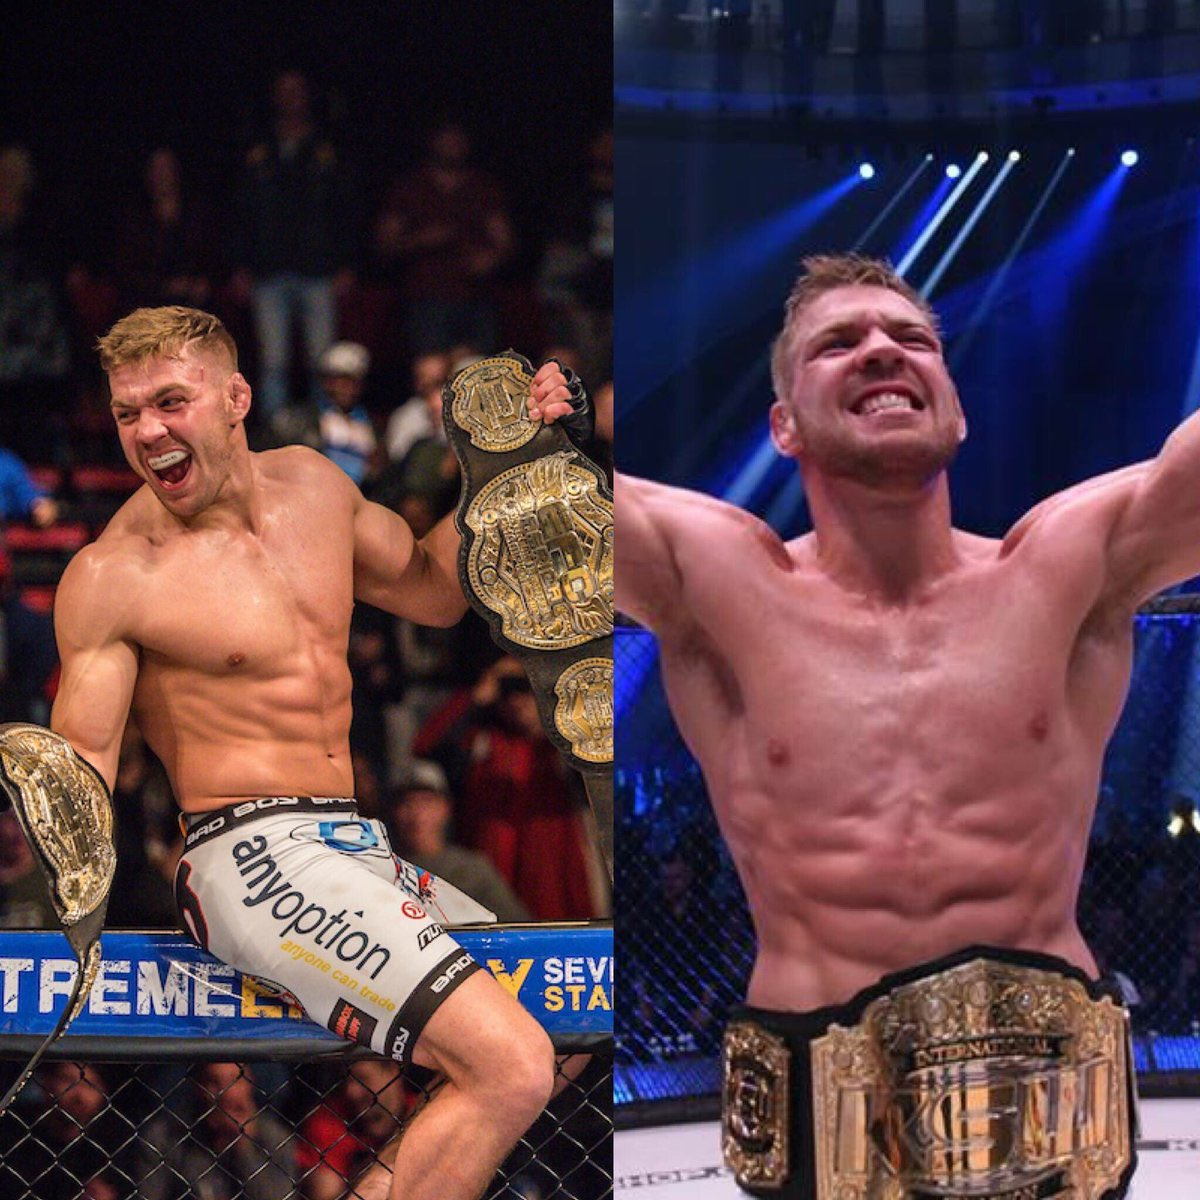 @danawhite I know you're going to be a little busy on Oct 6th but you gotta check out triple champ @dricusduplessis, @KSW_MMA & @EFCworldwide 2 weight champ https://t.co/Y6XL2yo4JM